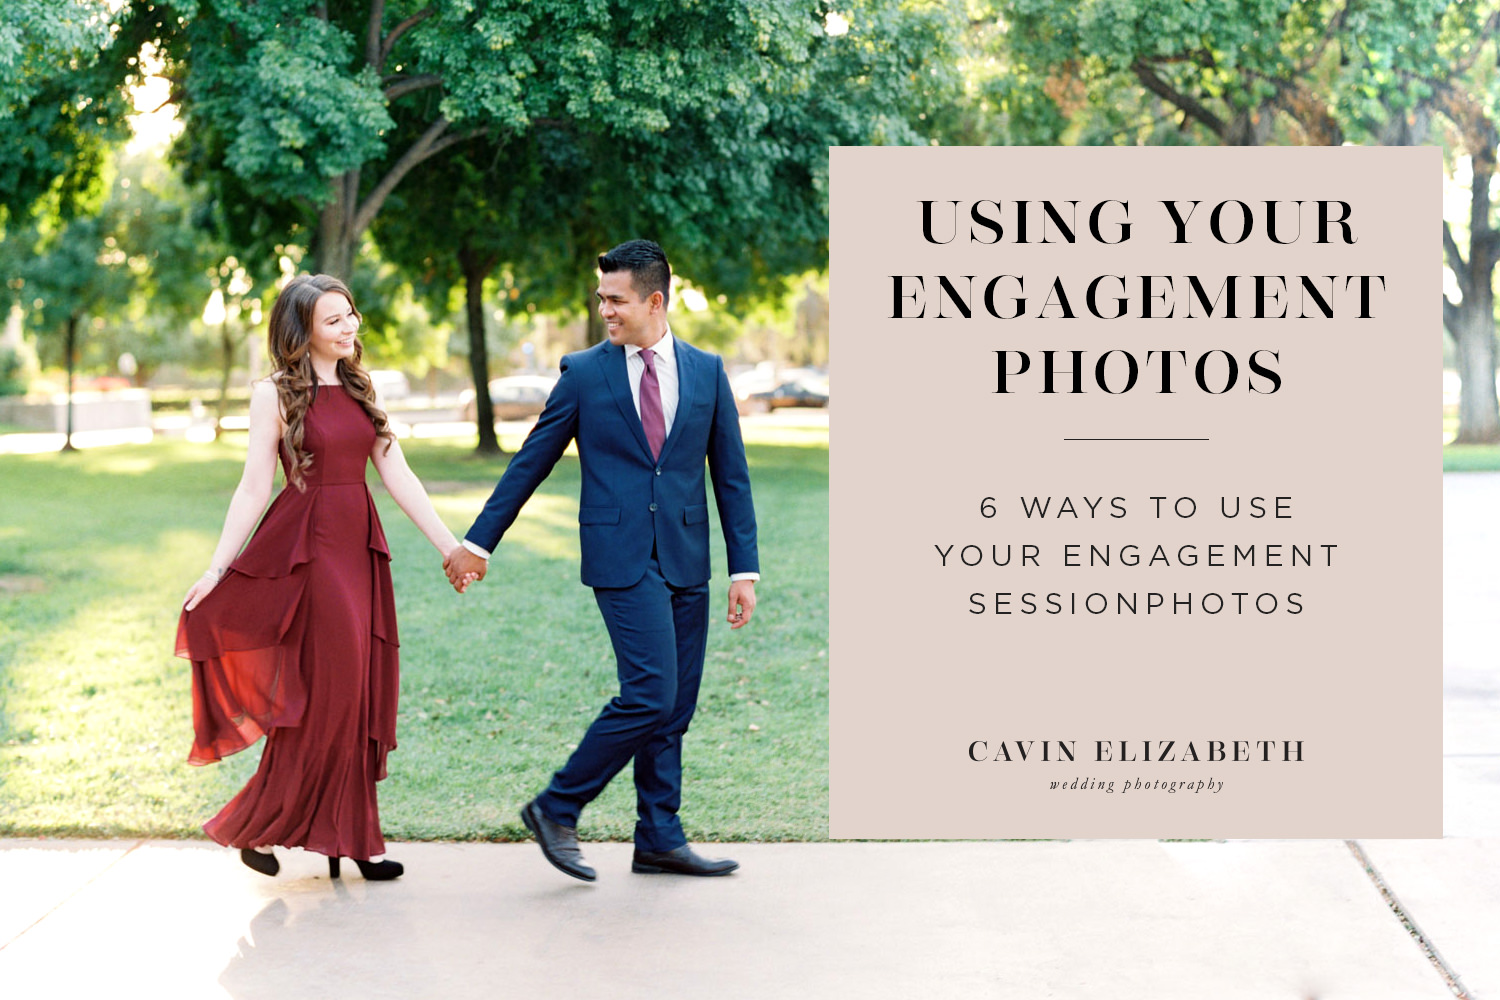 6 Great Ways to Use Engagement Photos for Your Home and Wedding